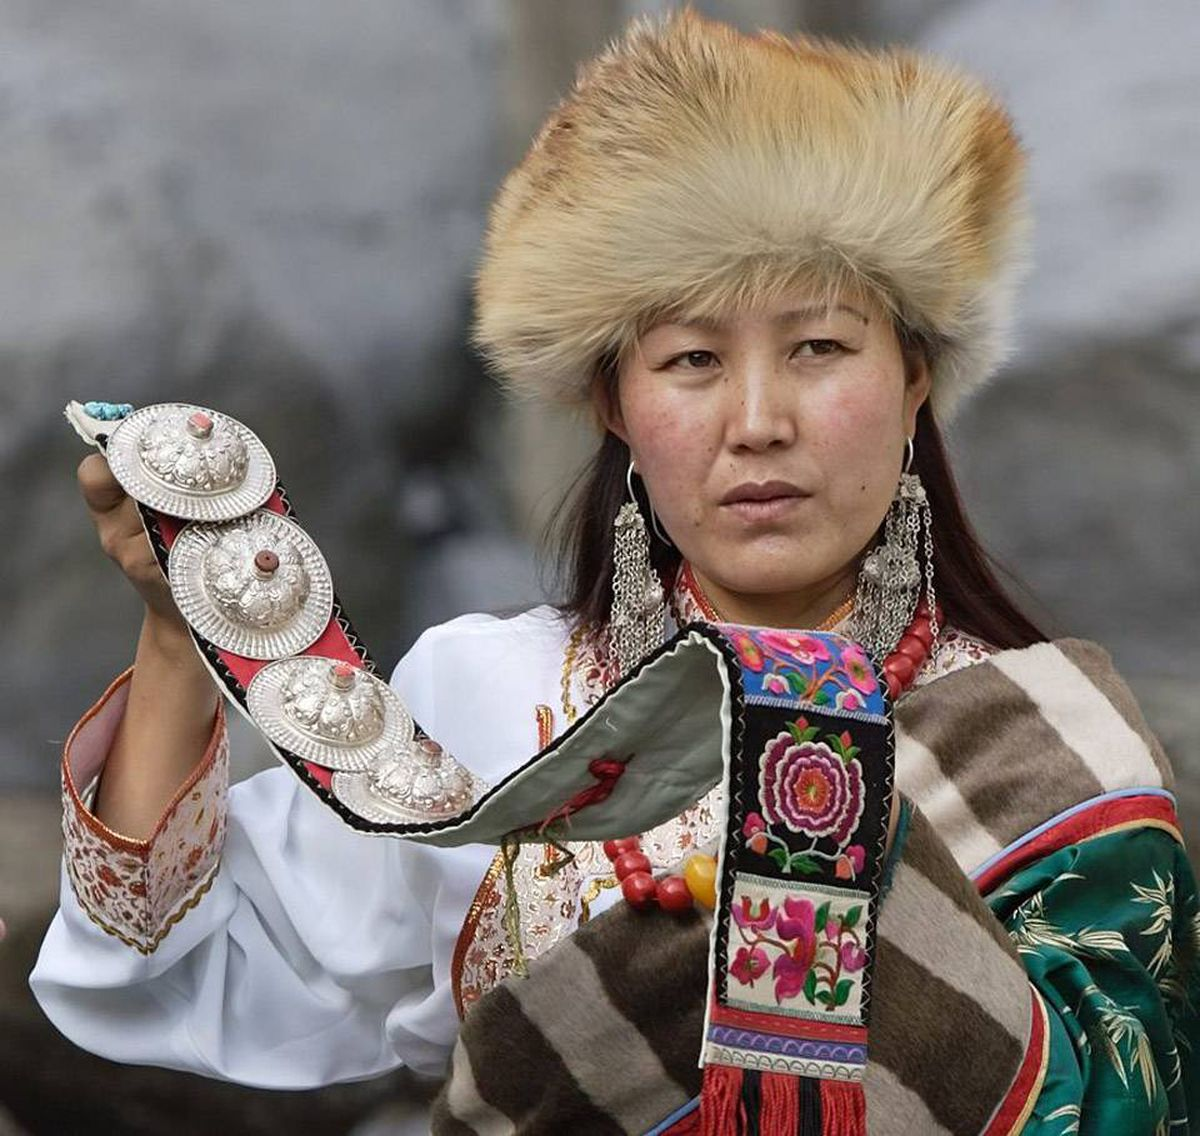 Tibetans once had songs for almost every activity. In Tibet in Song, Lhamo explains the costume her grandmother sent.